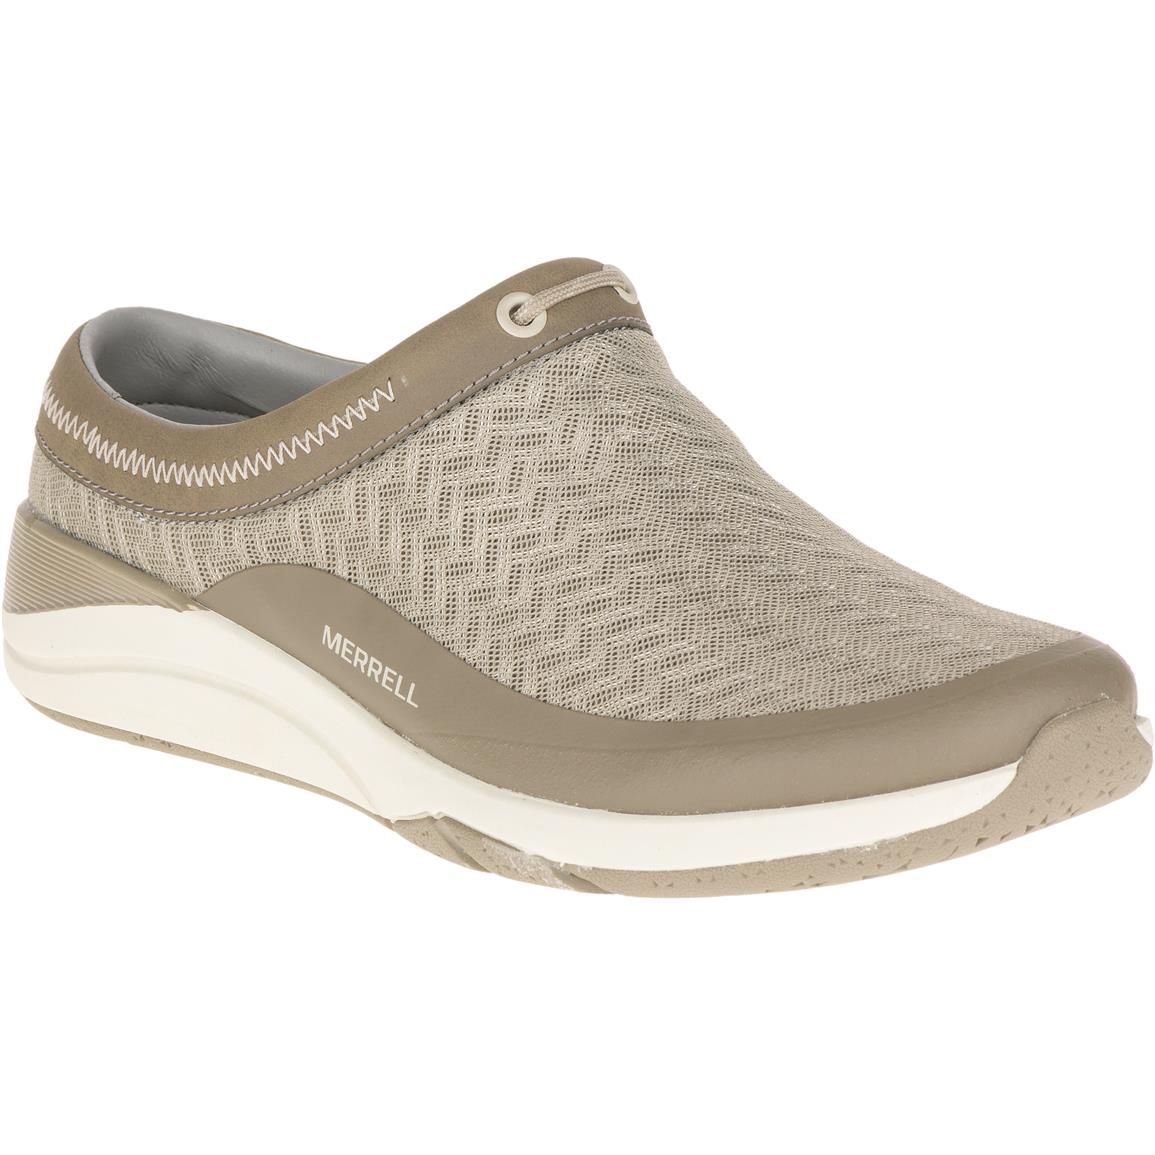 Merrell Applaud Women's Mesh Slide Shoes, Taupe